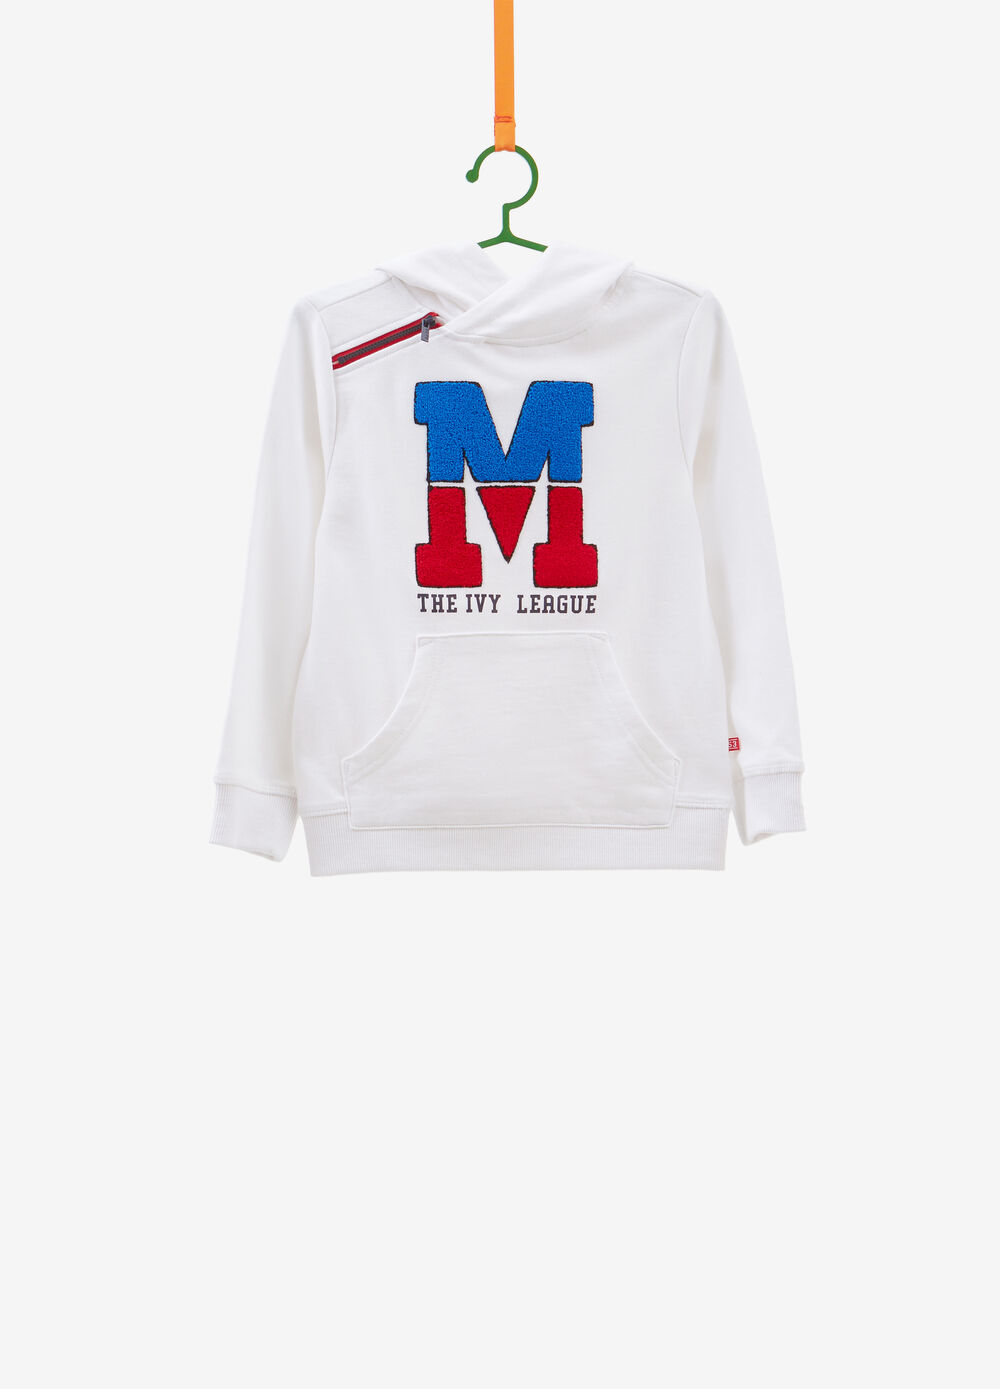 Sweatshirt with patch and printed lettering